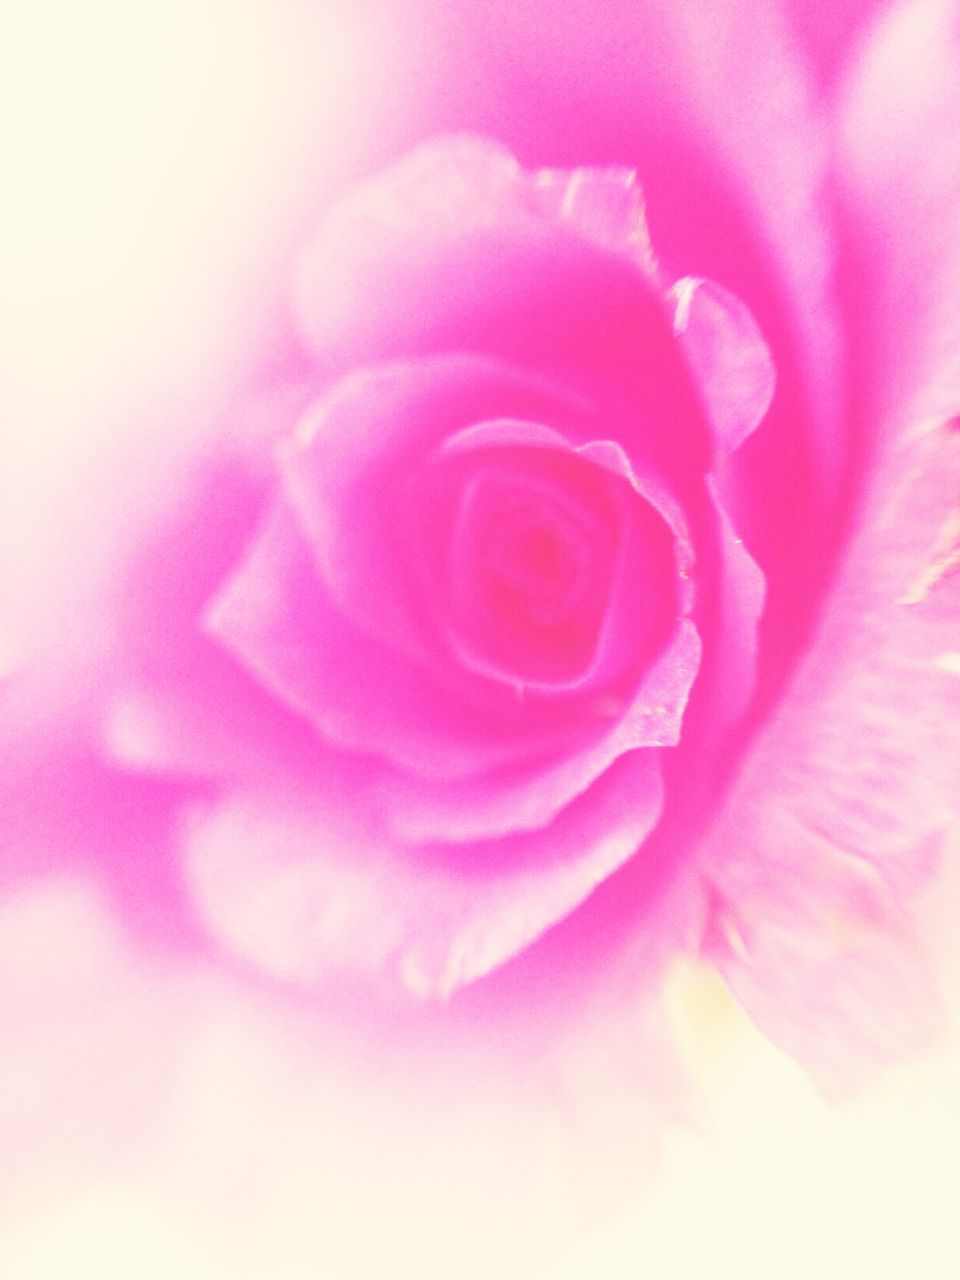 flower, nature, love, beauty, pink, petal, growth, spring, plant, beauty in nature, blooming, no people, close-up, flower head